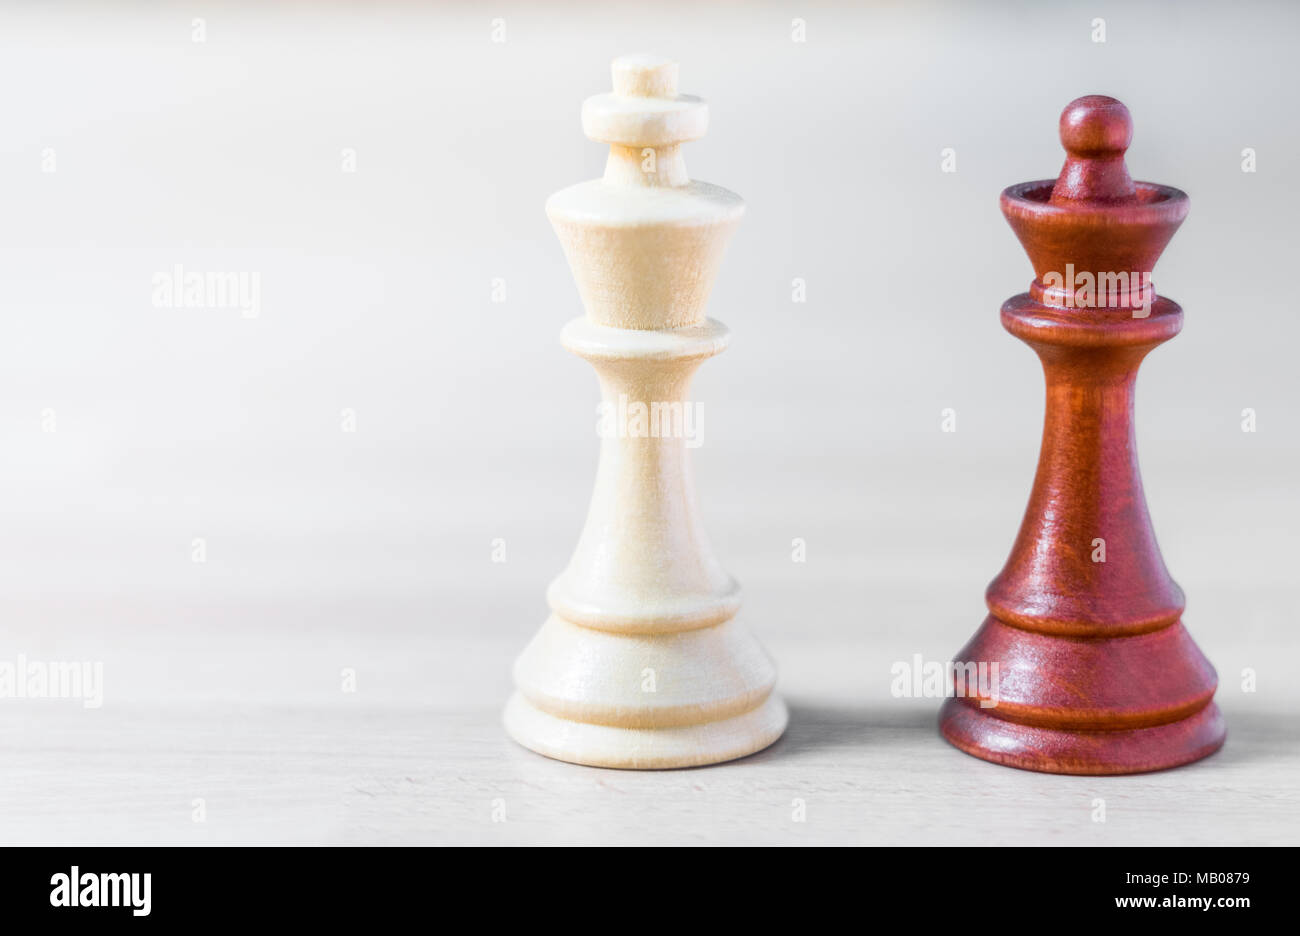 A white king and a black queen chess pieces